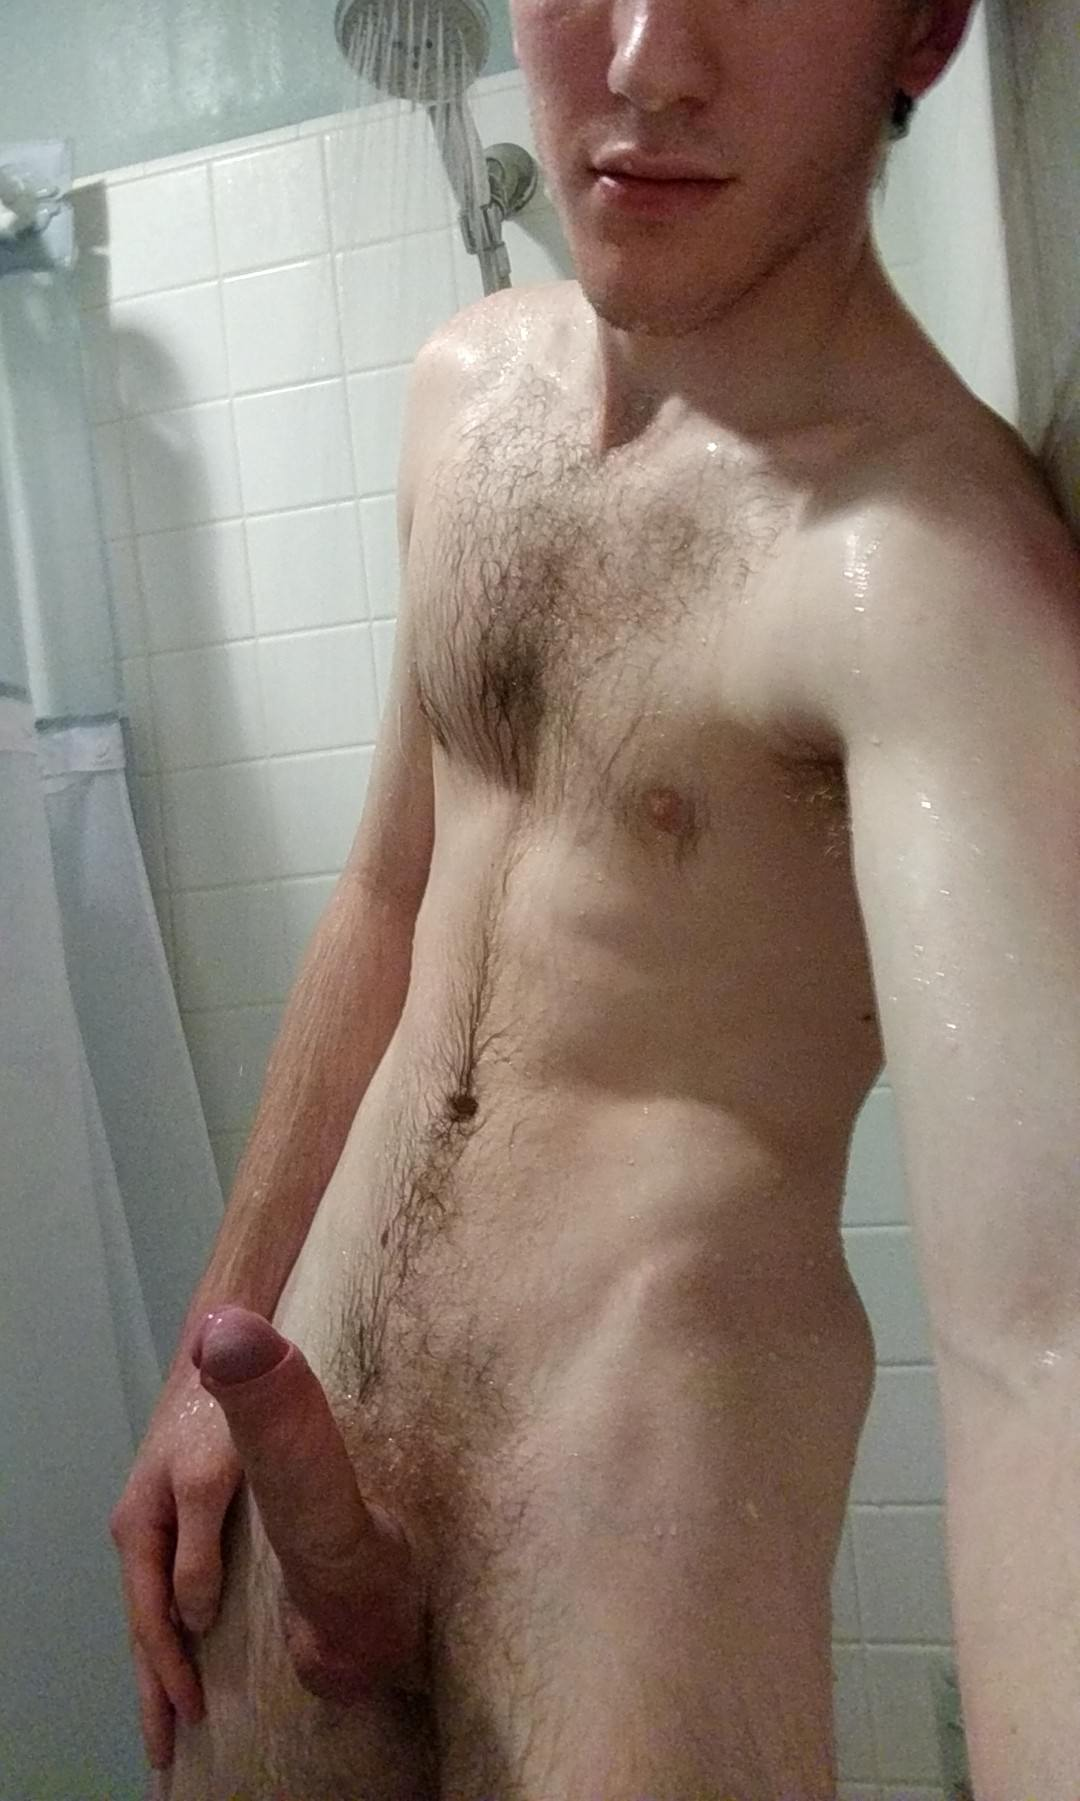 Amateur guy showering wanking